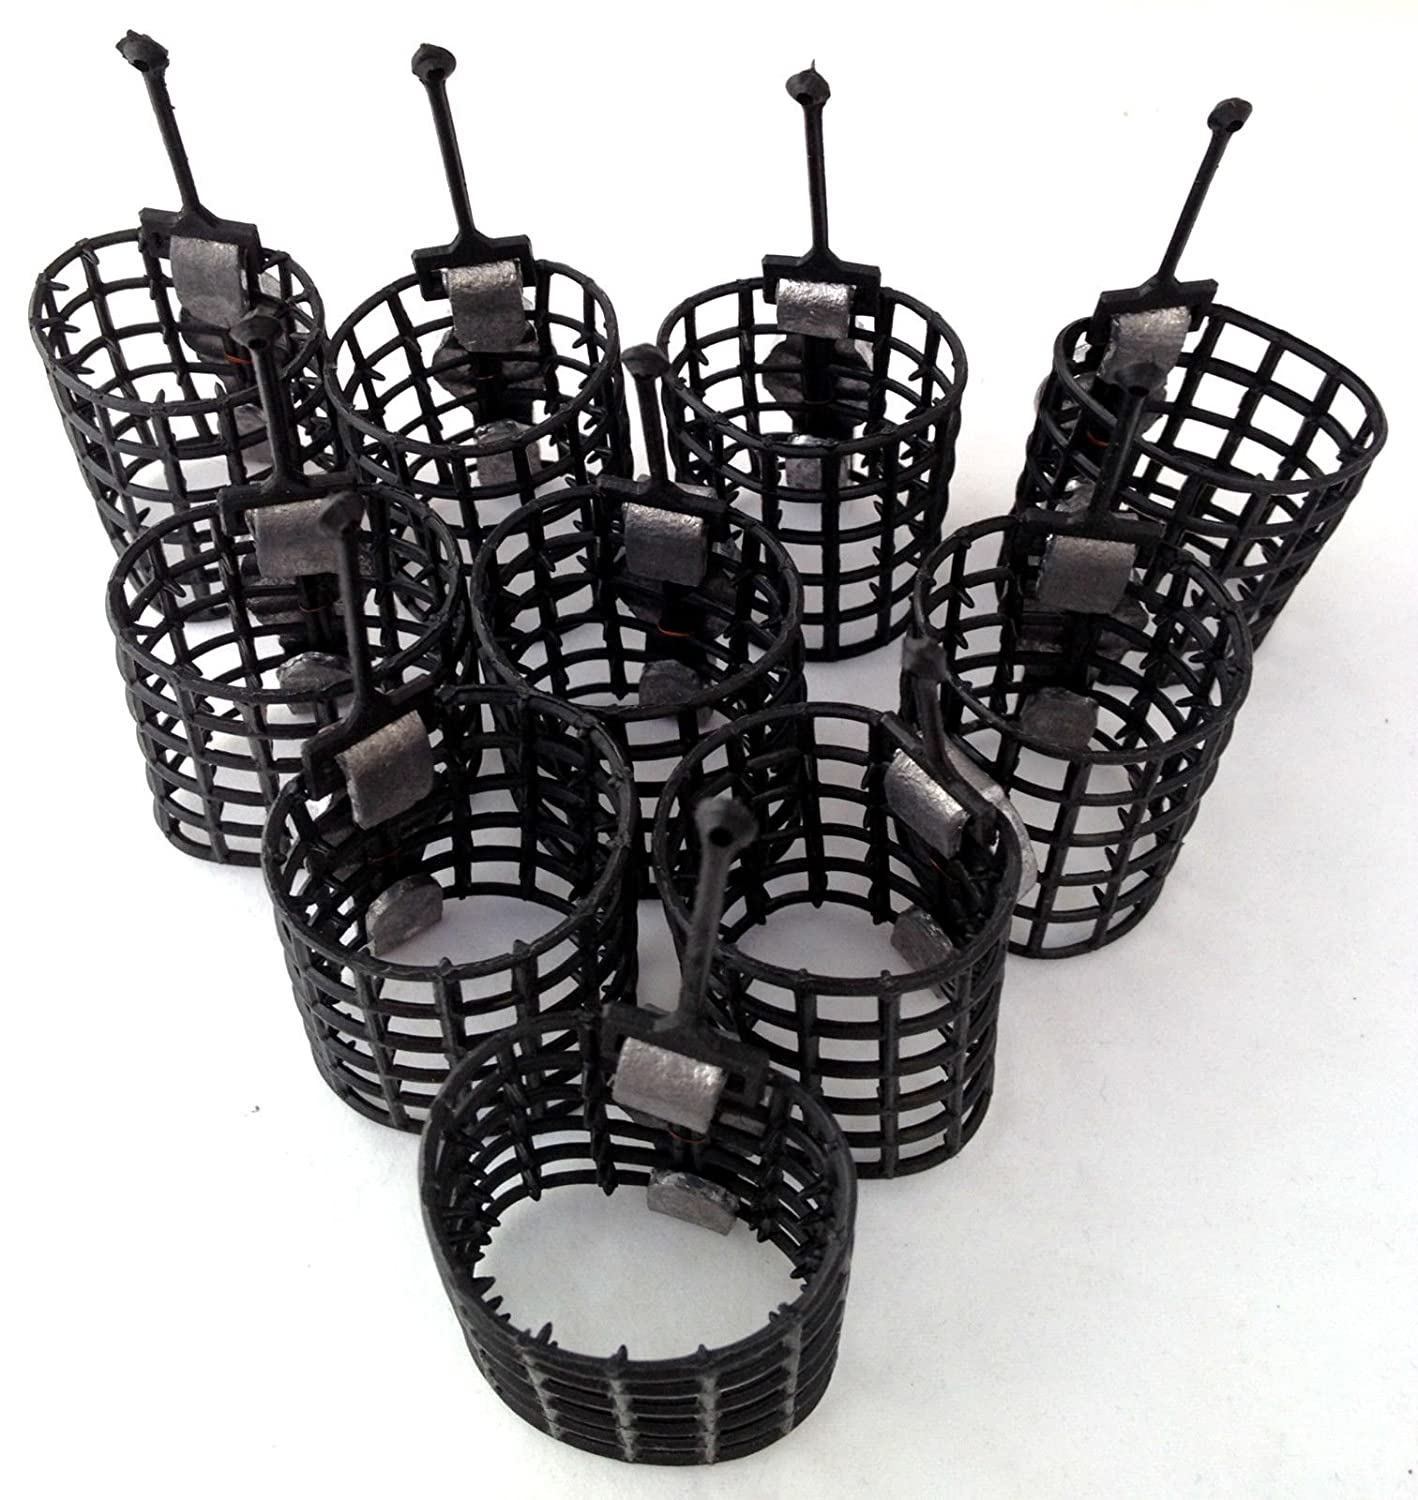 10 cage feeders 10g match course feeders carp fishing tackle BZS